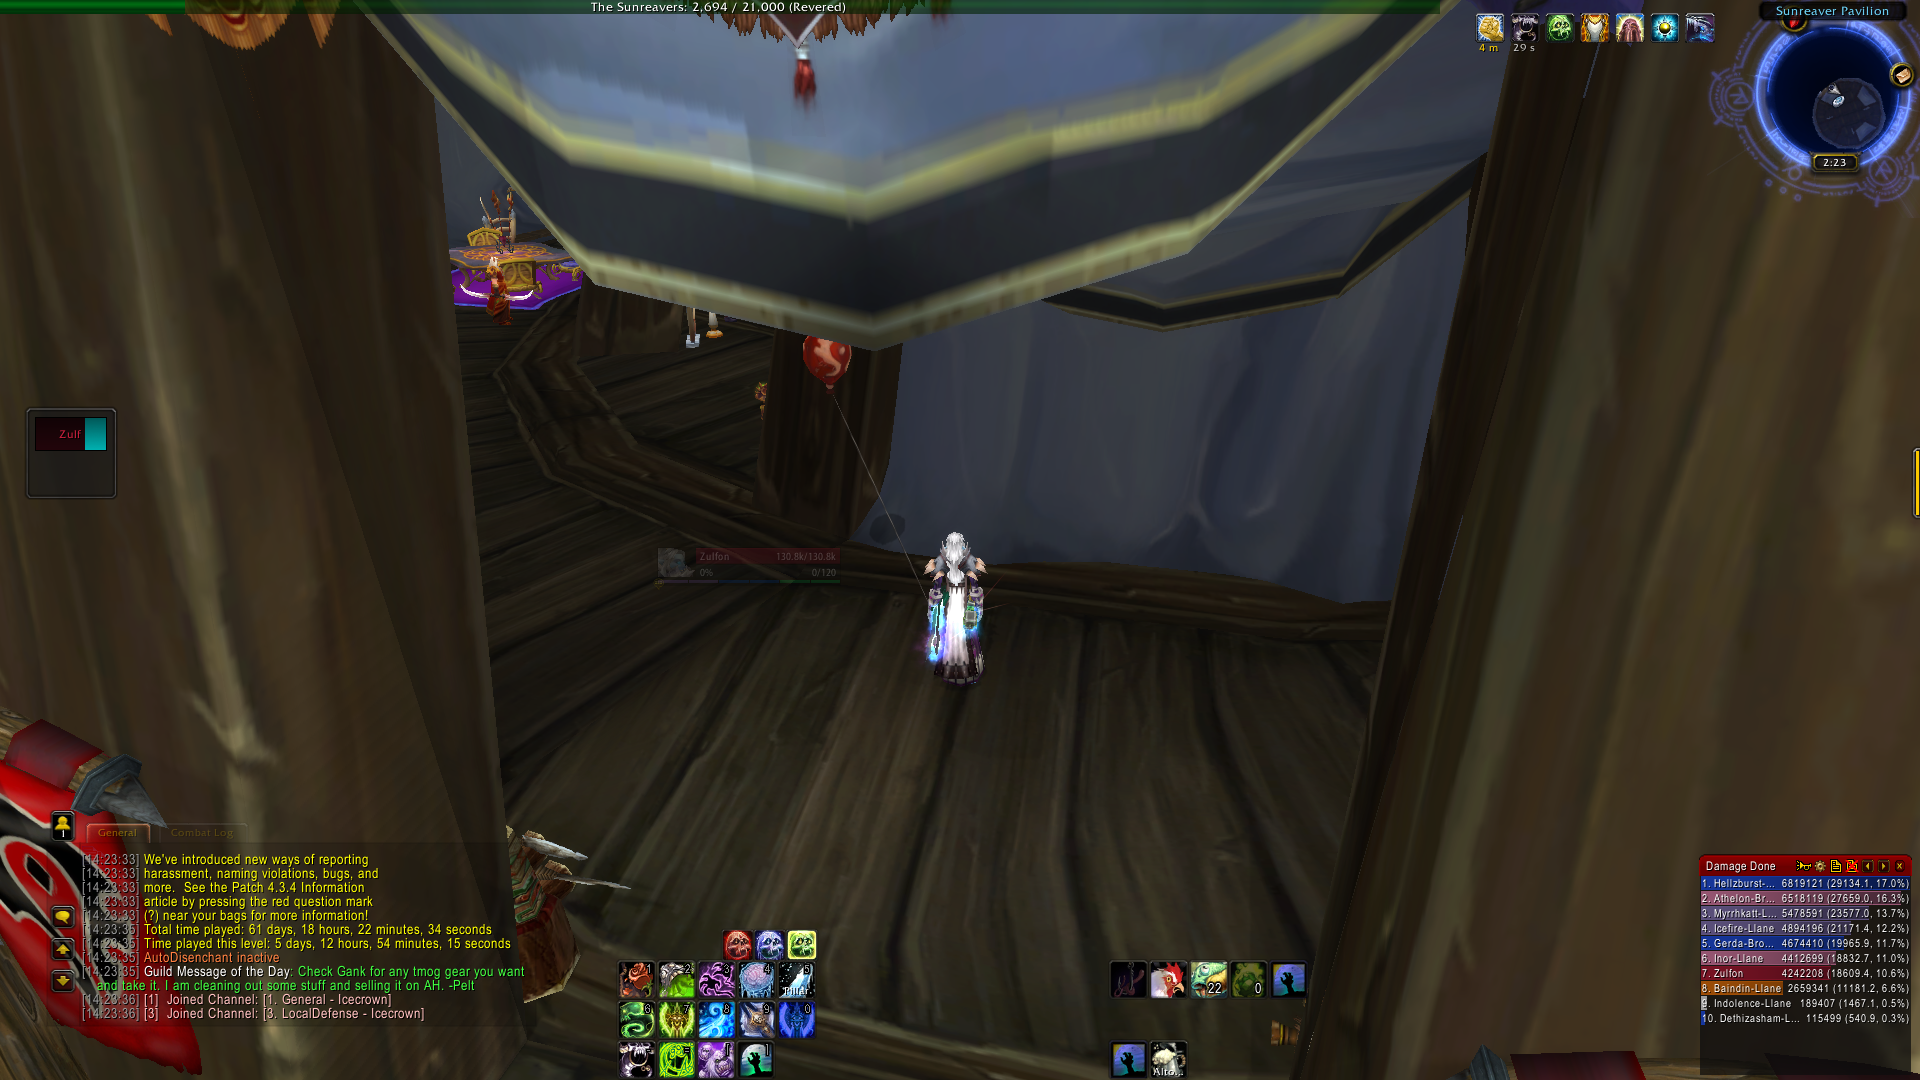 Oh, the addons you can't even see